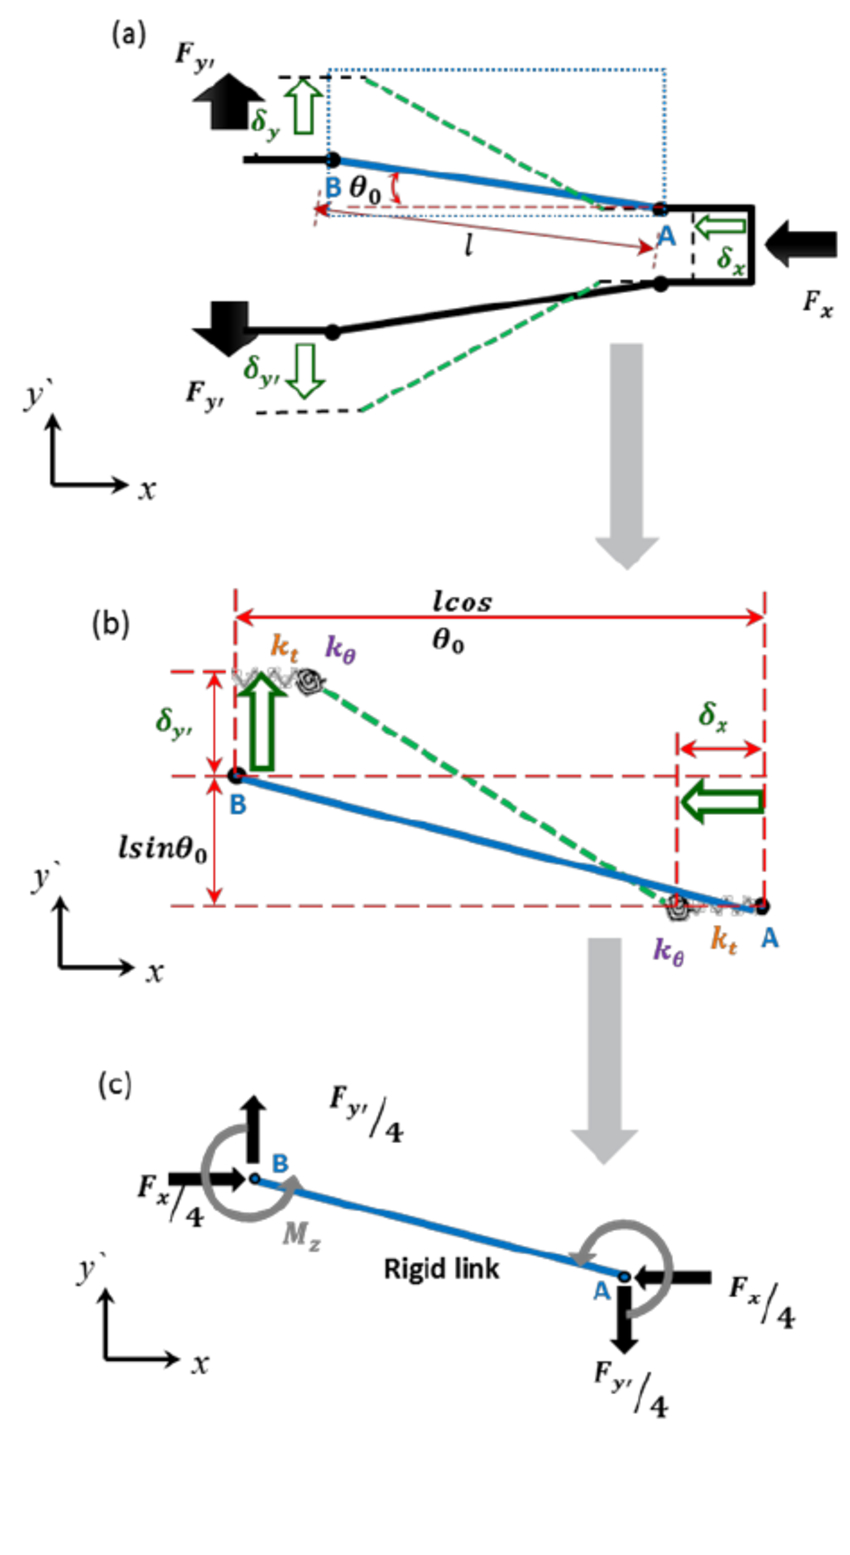 Free Body Diagrams Spring Model Of Flexure Hinges And Free Body Diagram In X Y Plane